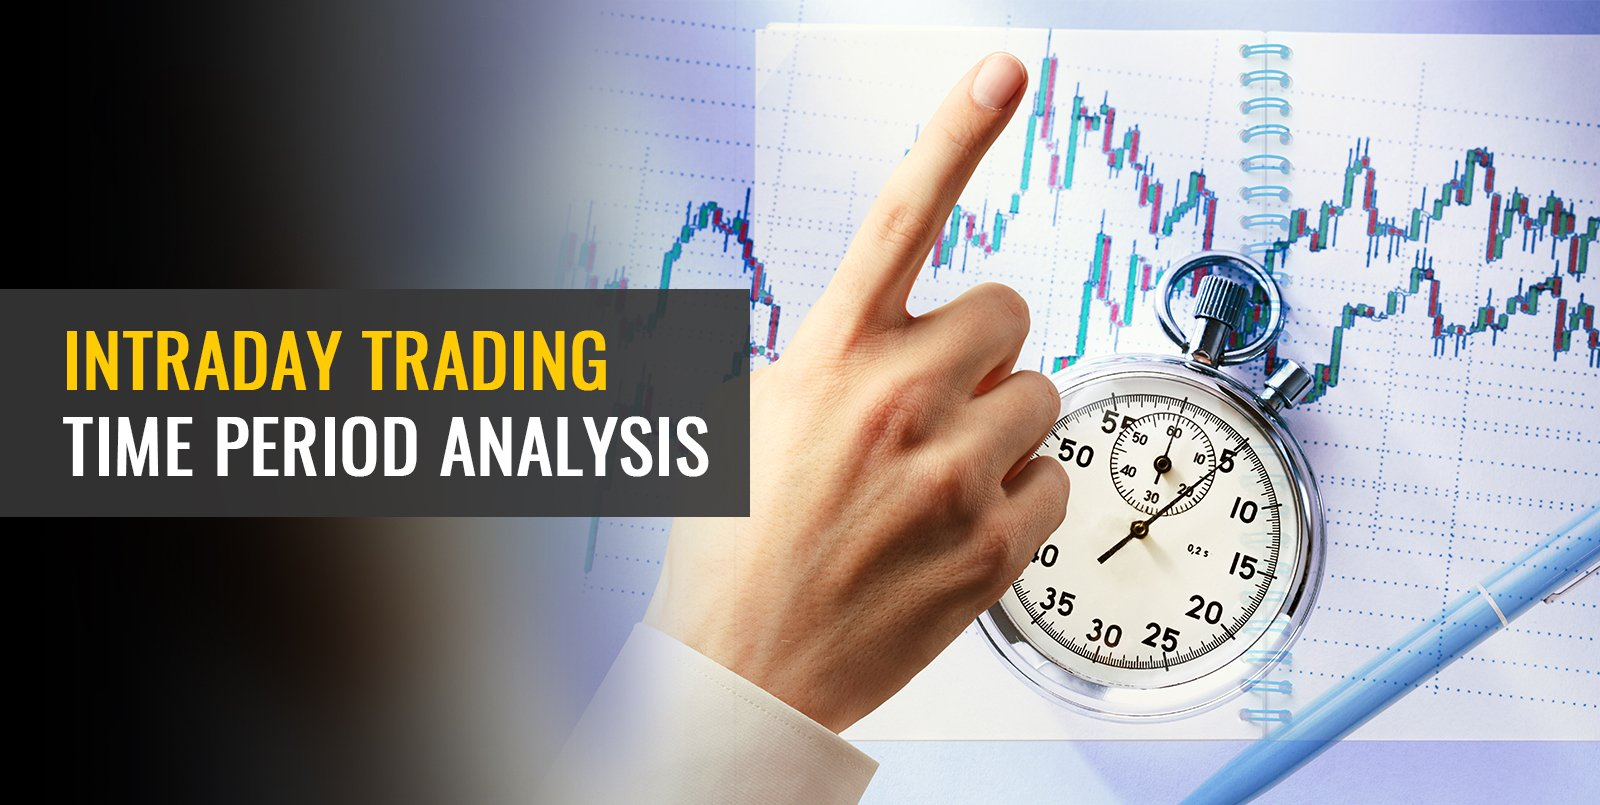 Intraday Trading Time Period Analysis